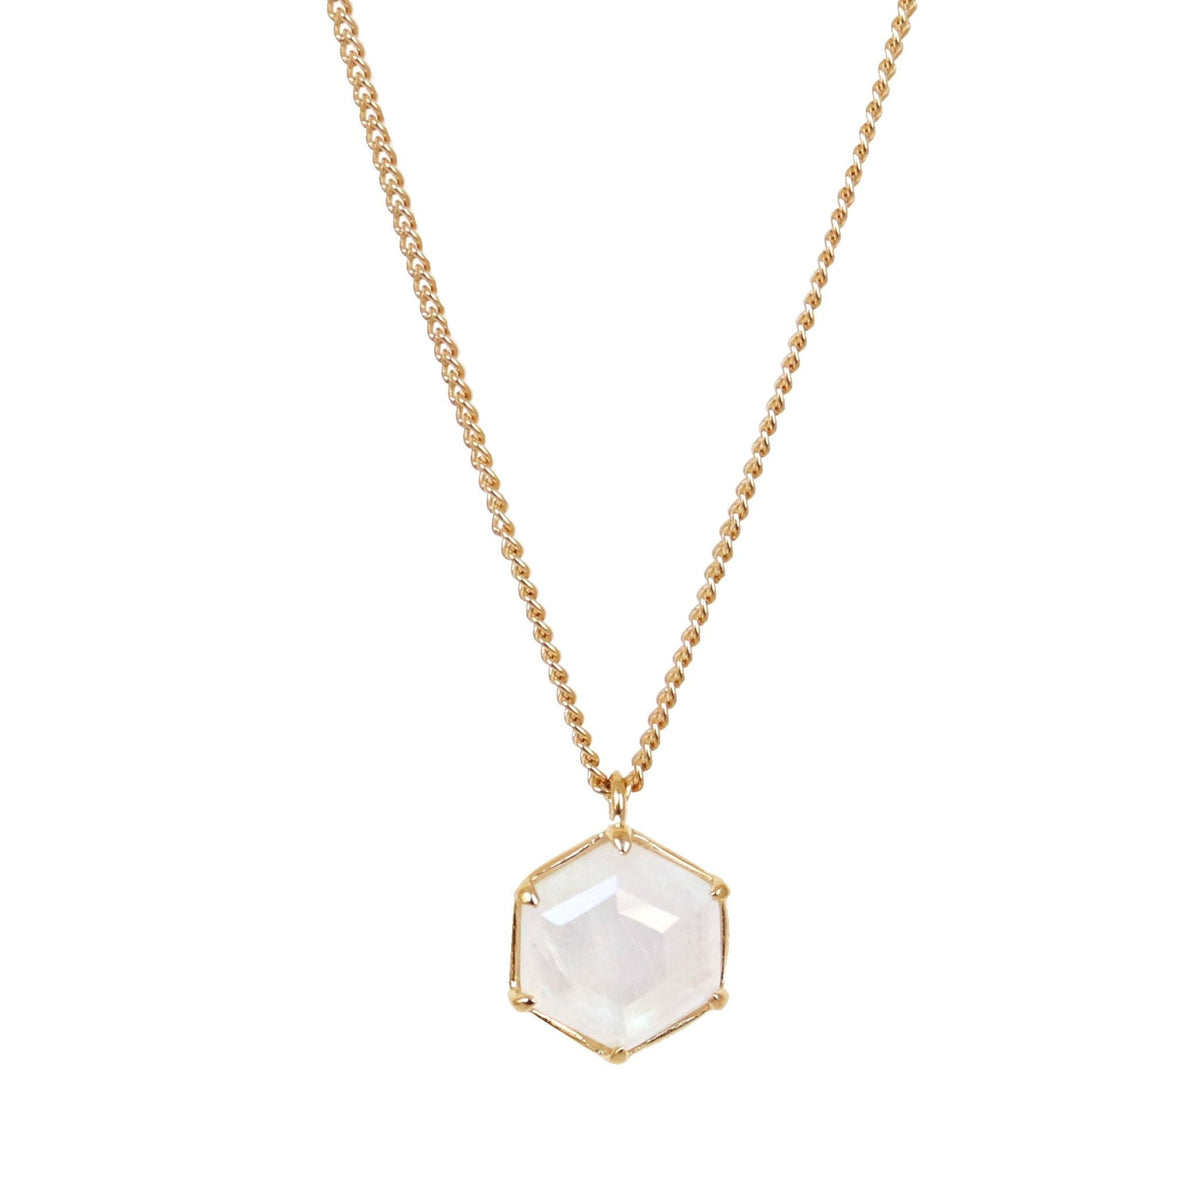 GRACE REVERSIBLE NECKLACE - RAINBOW MOONSTONE & GOLD - SO PRETTY CARA COTTER